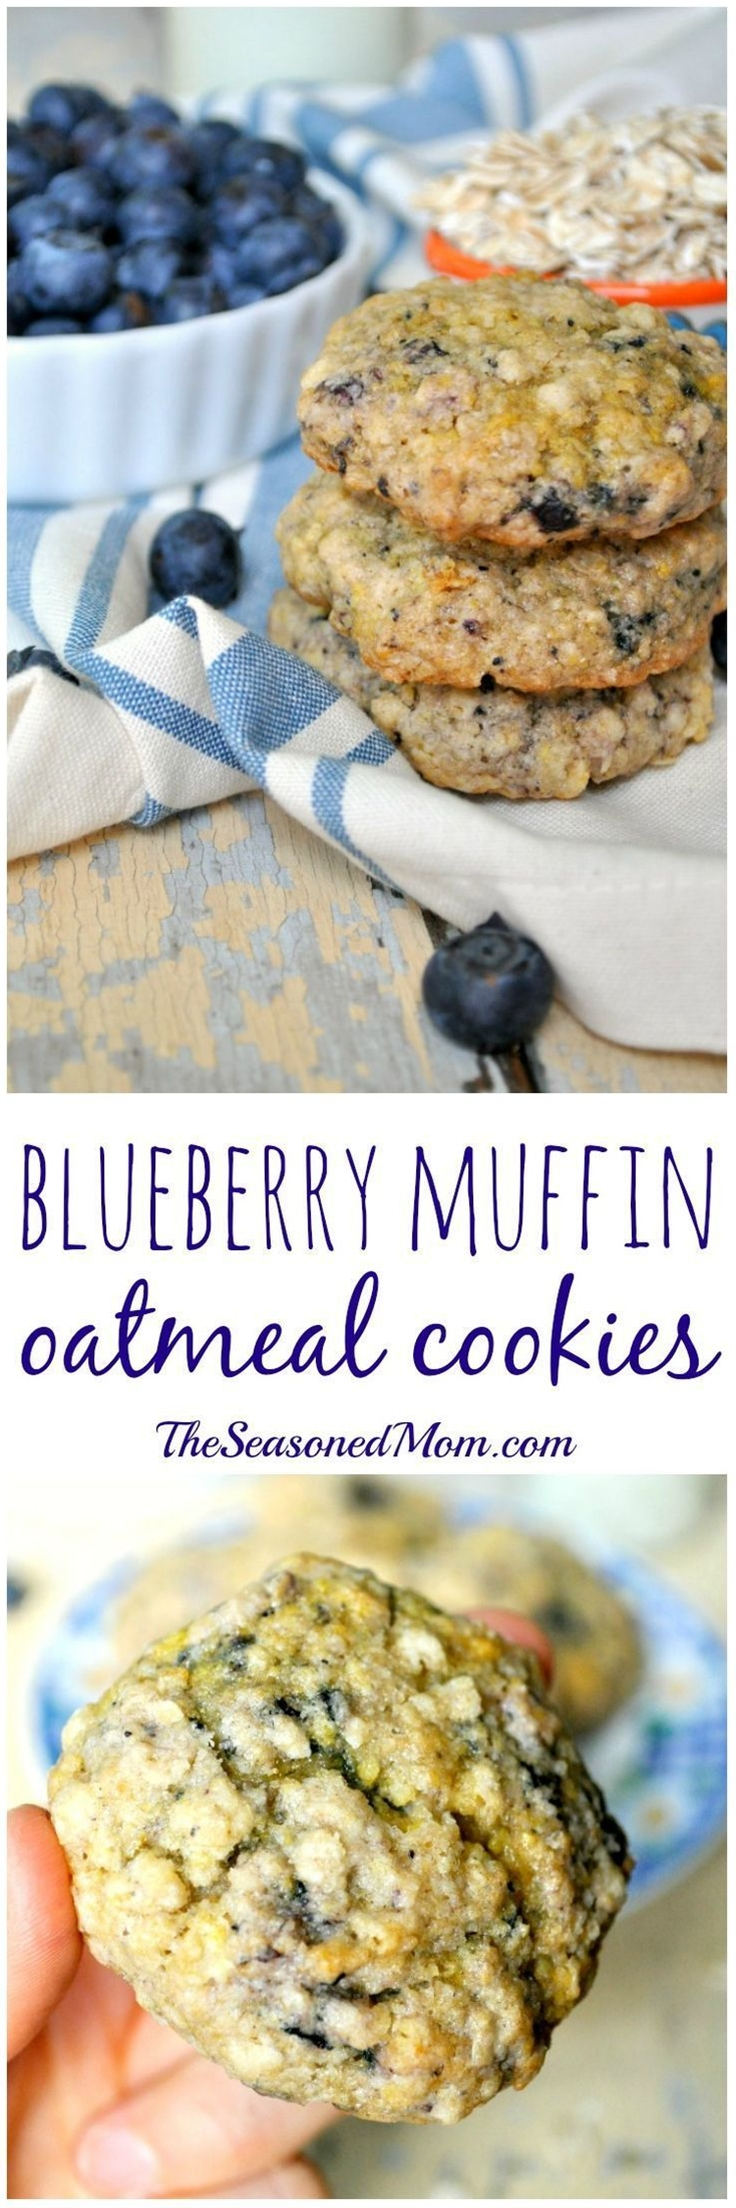 Whole grains + a boxed muffin mix = thick, soft, and chewy Blueberry Muffin Oatmeal Cookies...perfect for breakfast, snack, or even dessert!\n\n INGREDIENTS\n 1 (17.8 ounce) box blueberry muffin mix (I like Duncan Hines Simple Mornings Wild Maine Blueberry mix, which includes a can of blueberries, but any similar boxed mix will work well. If you use a mix without a can of blueberries, you can about ¼ cup - ½ cup of fresh or frozen blueberries to the mix)\n ¾ cup quick-cooking oats\n ¼ cup brown sugar\n ⅓ cup canola oil\n 1 tablespoon milk\n 2 small eggs or 1 extra large egg